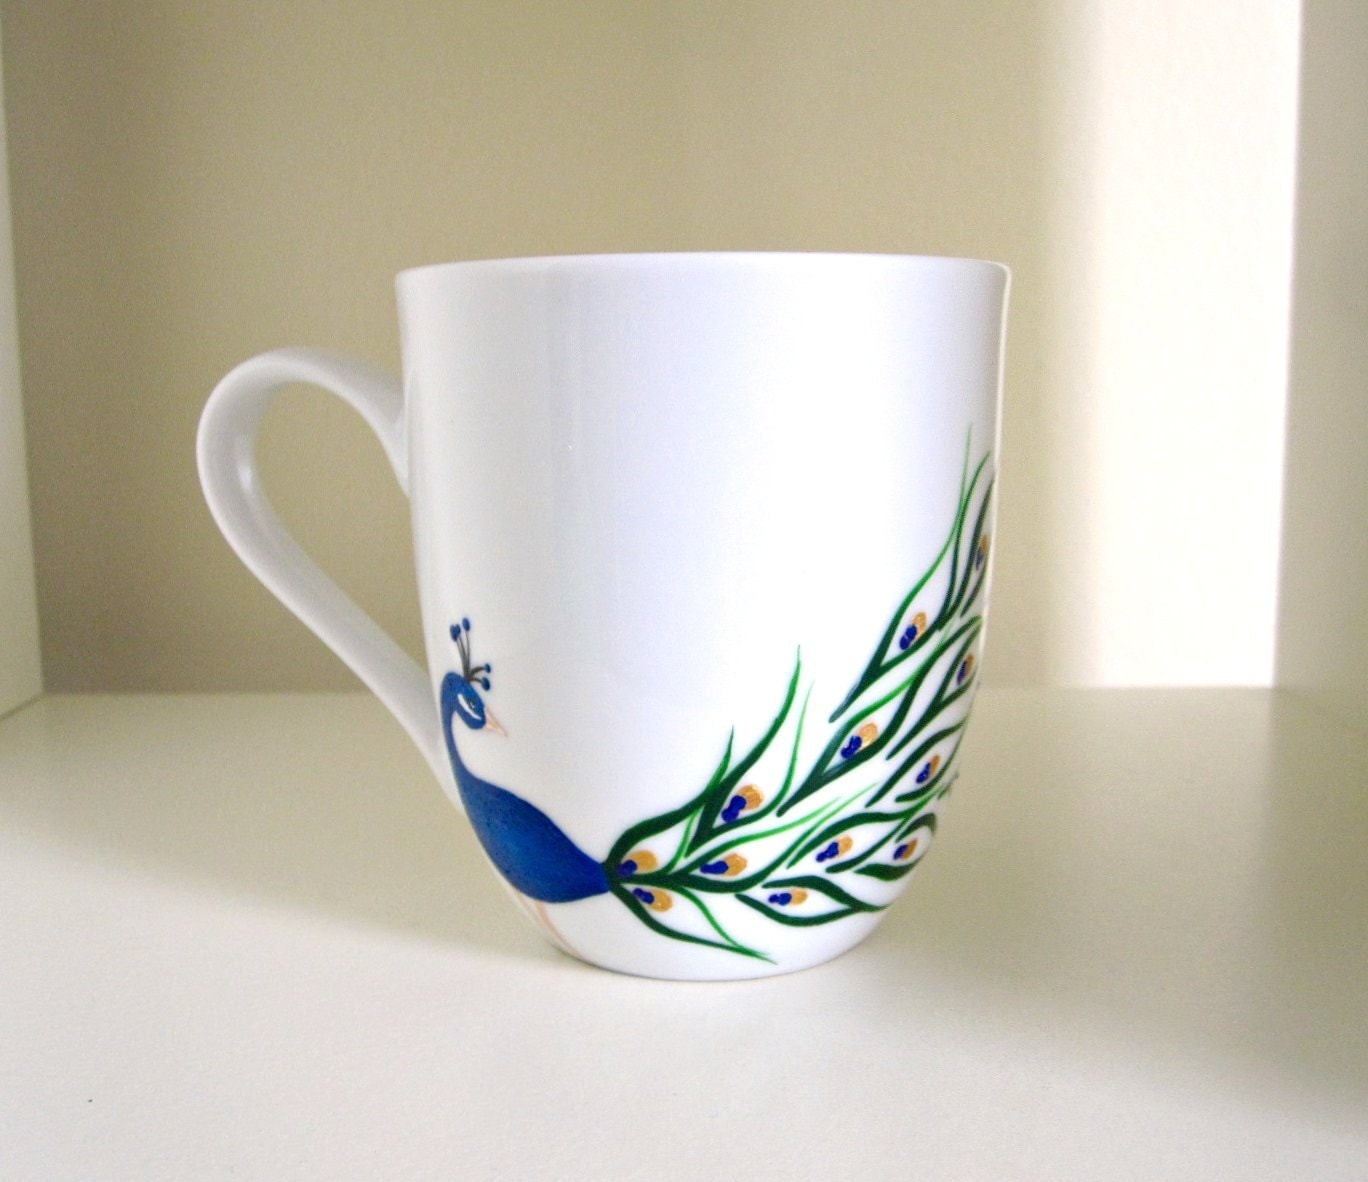 Peacock coffee cup hand painted porcelain mug by meku on etsy for How to paint a mug